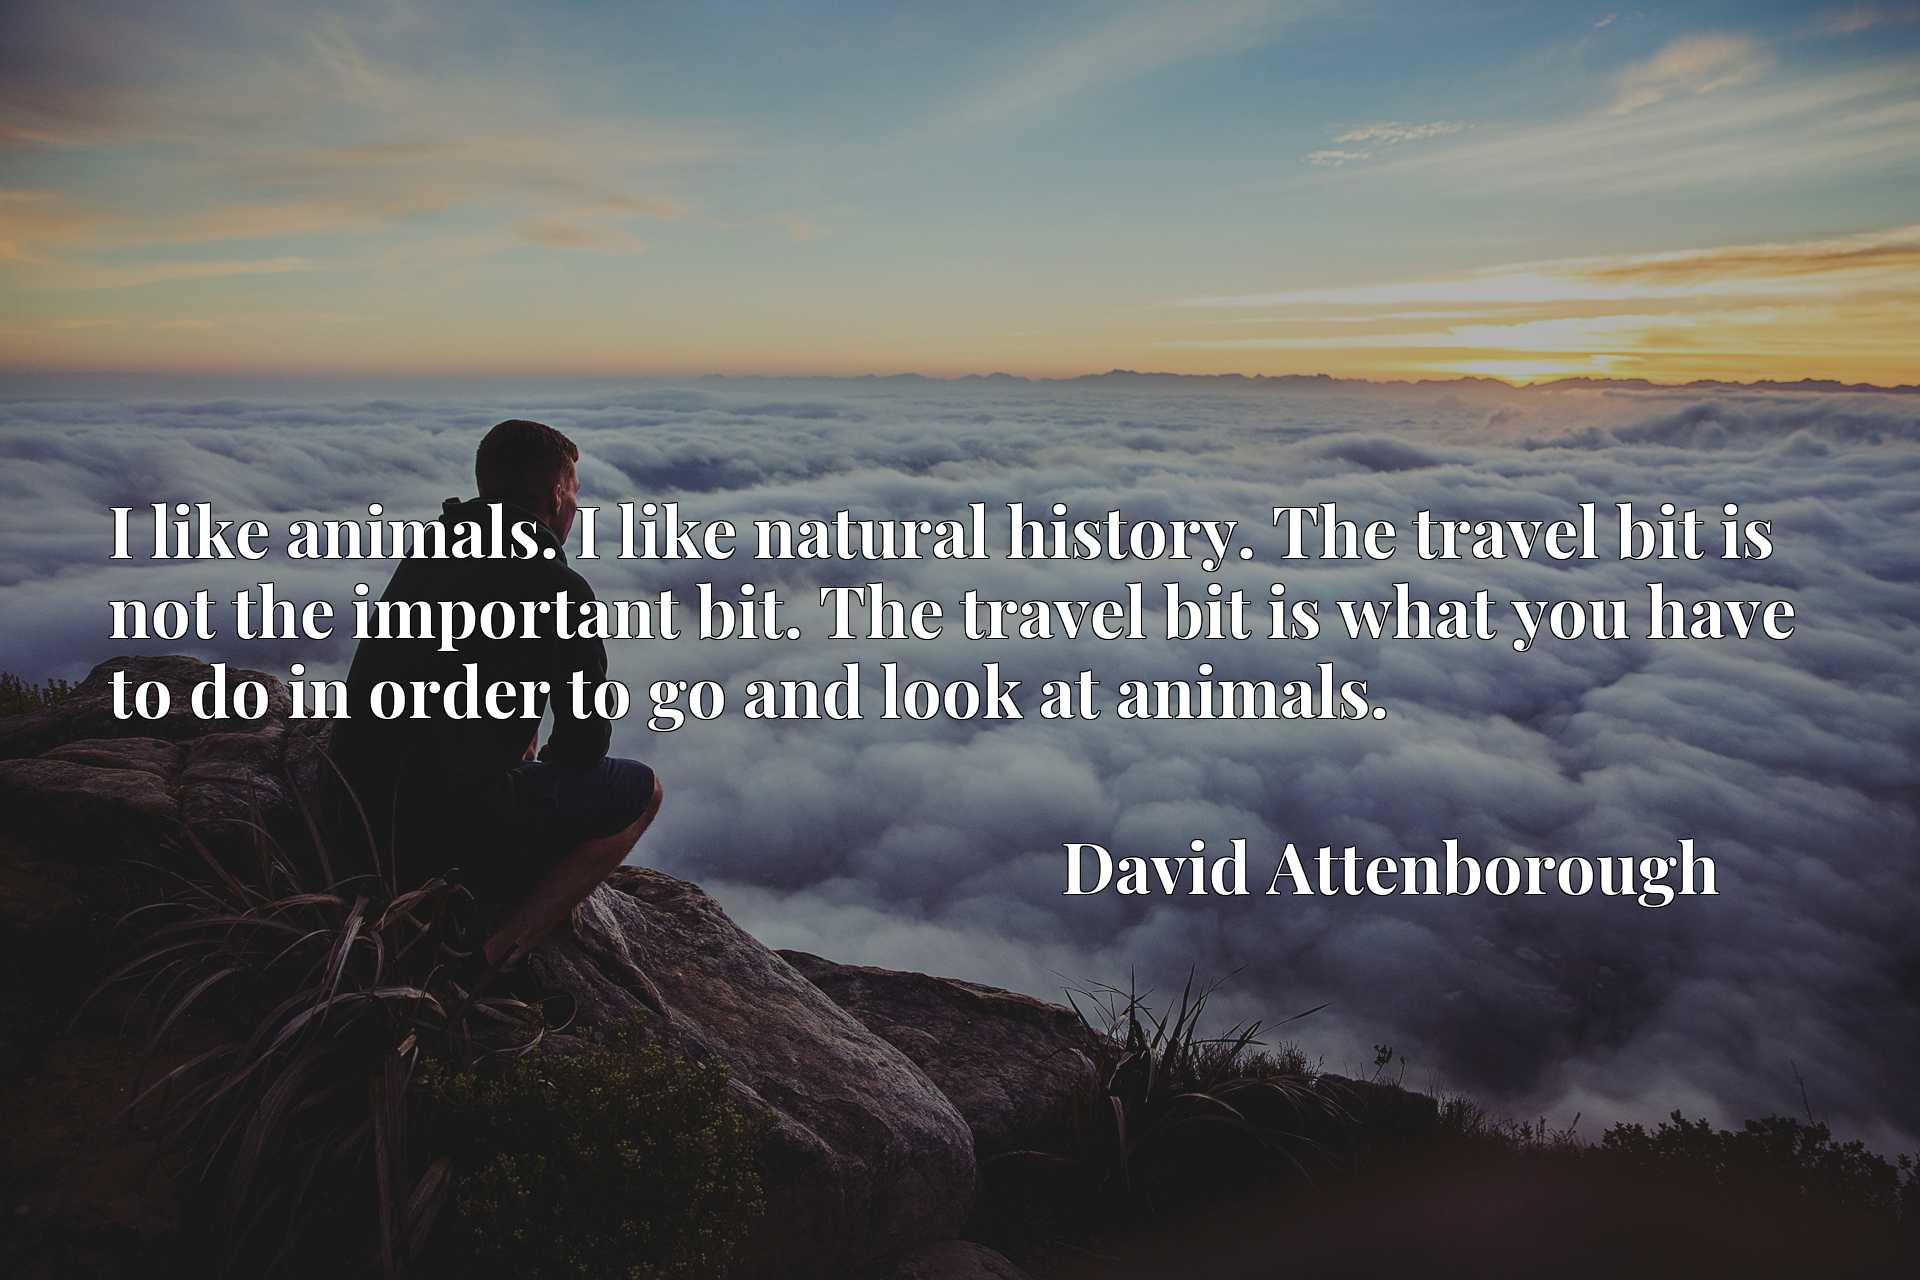 I like animals. I like natural history. The travel bit is not the important bit. The travel bit is what you have to do in order to go and look at animals.